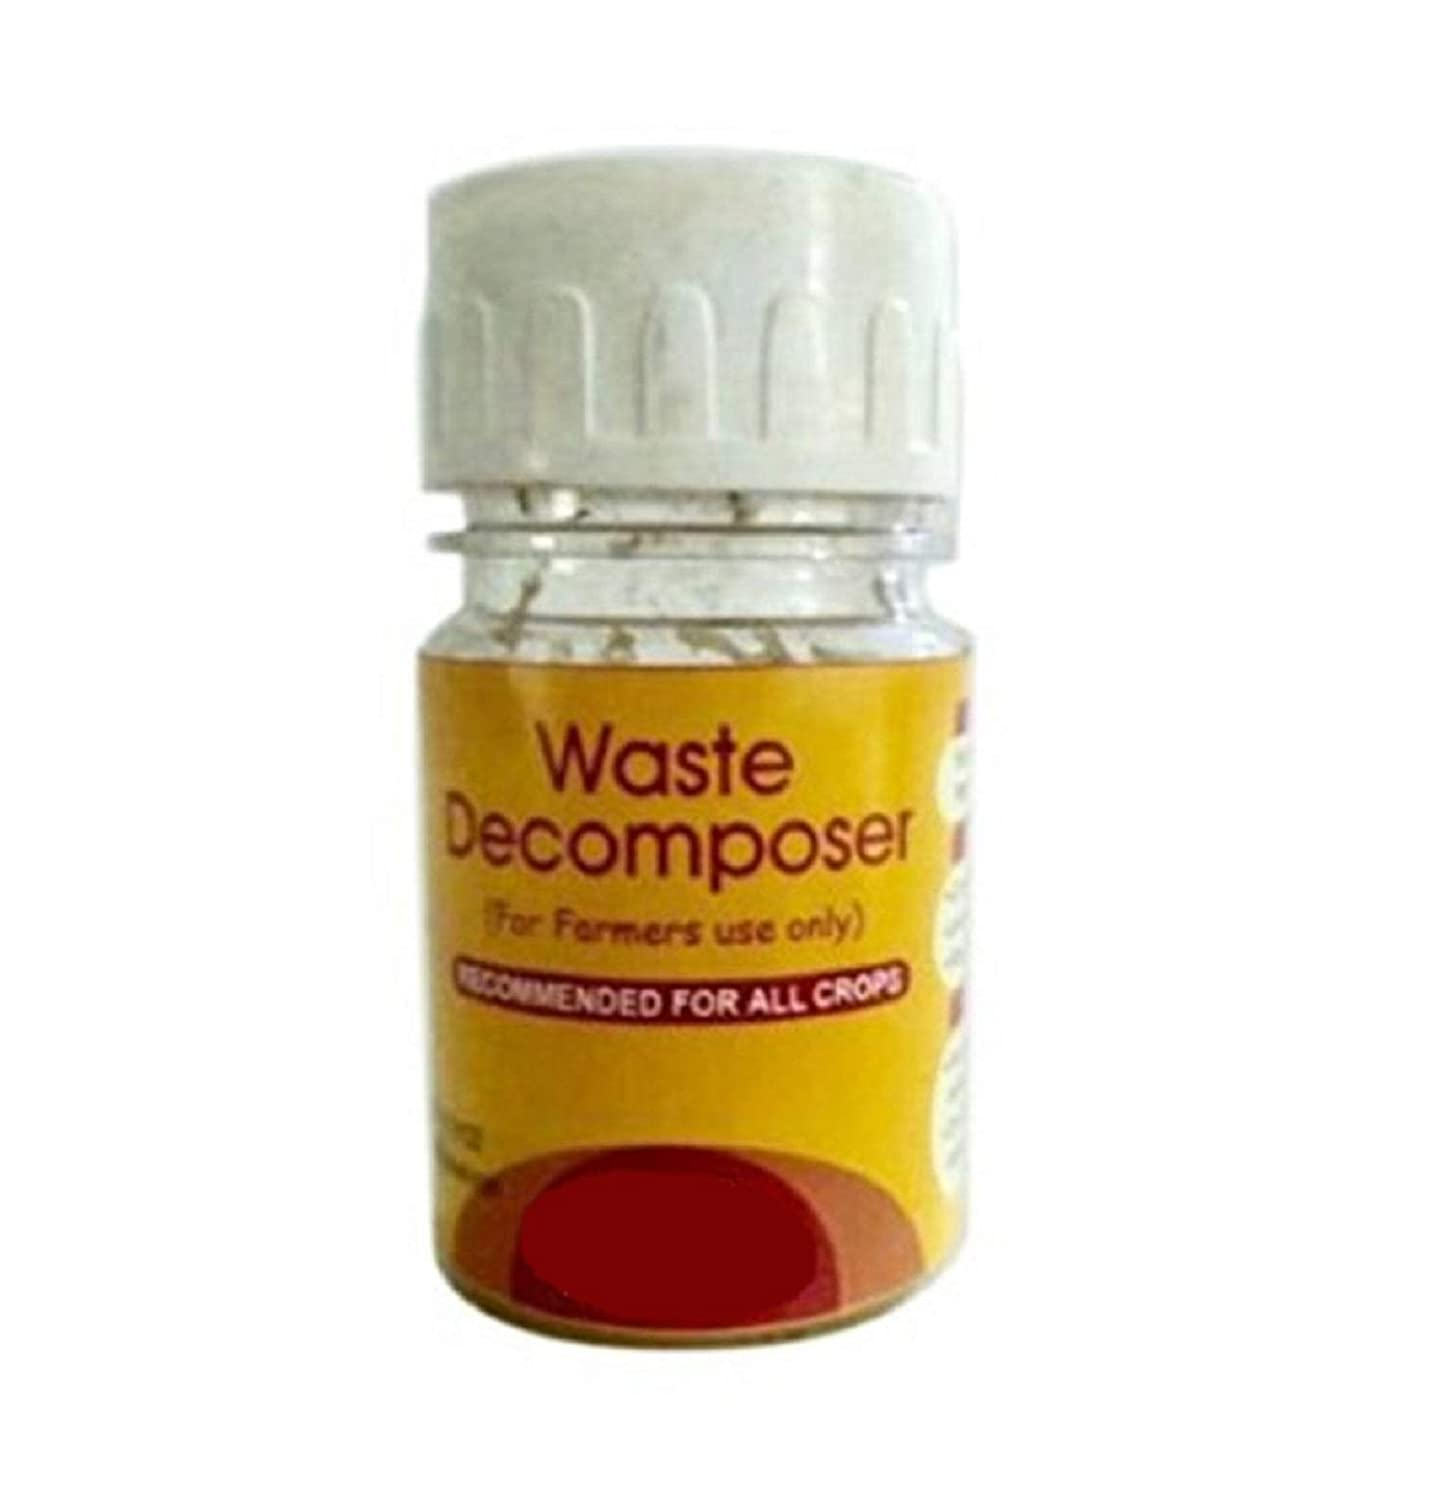 Waste Decomposer Made By Using Ncof Technology Ghaziabad Organic Waste Decomposer Pack Of 10 30ml Per Bottle Amazon In Garden Outdoors